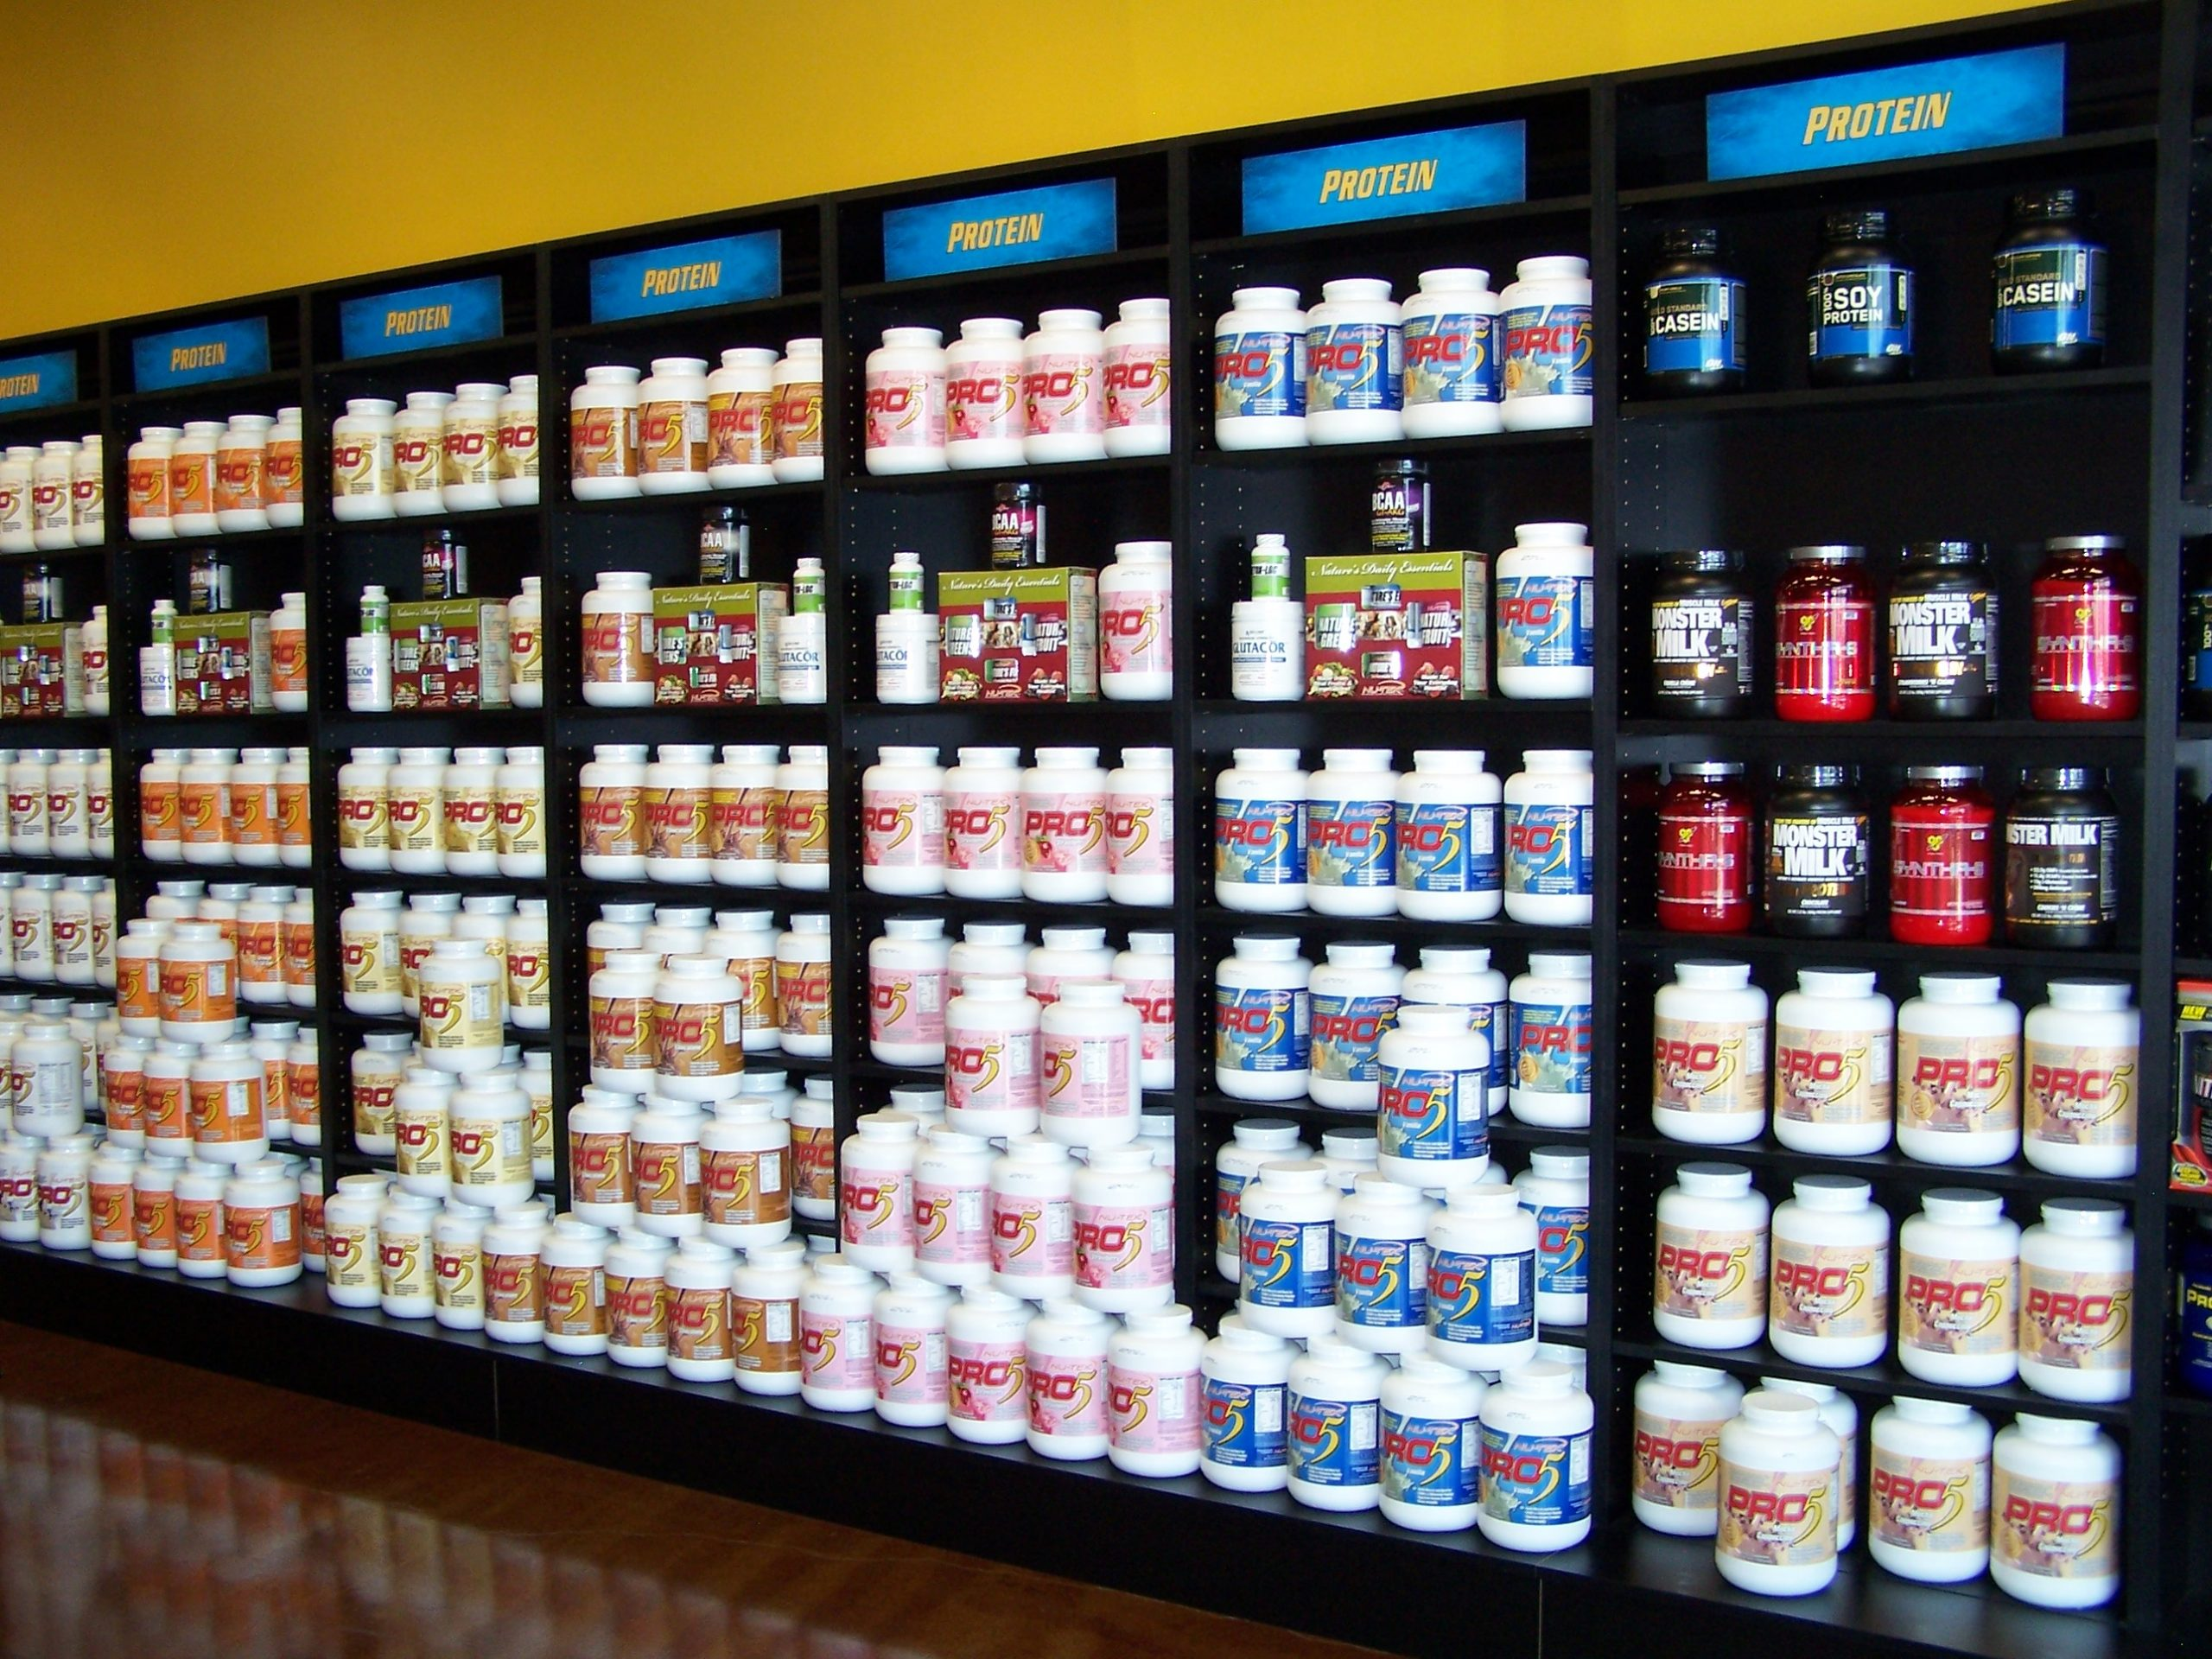 The Growth of Sales of Non-dairy Protein Alternatives is Strong…What's Pushing Growth?